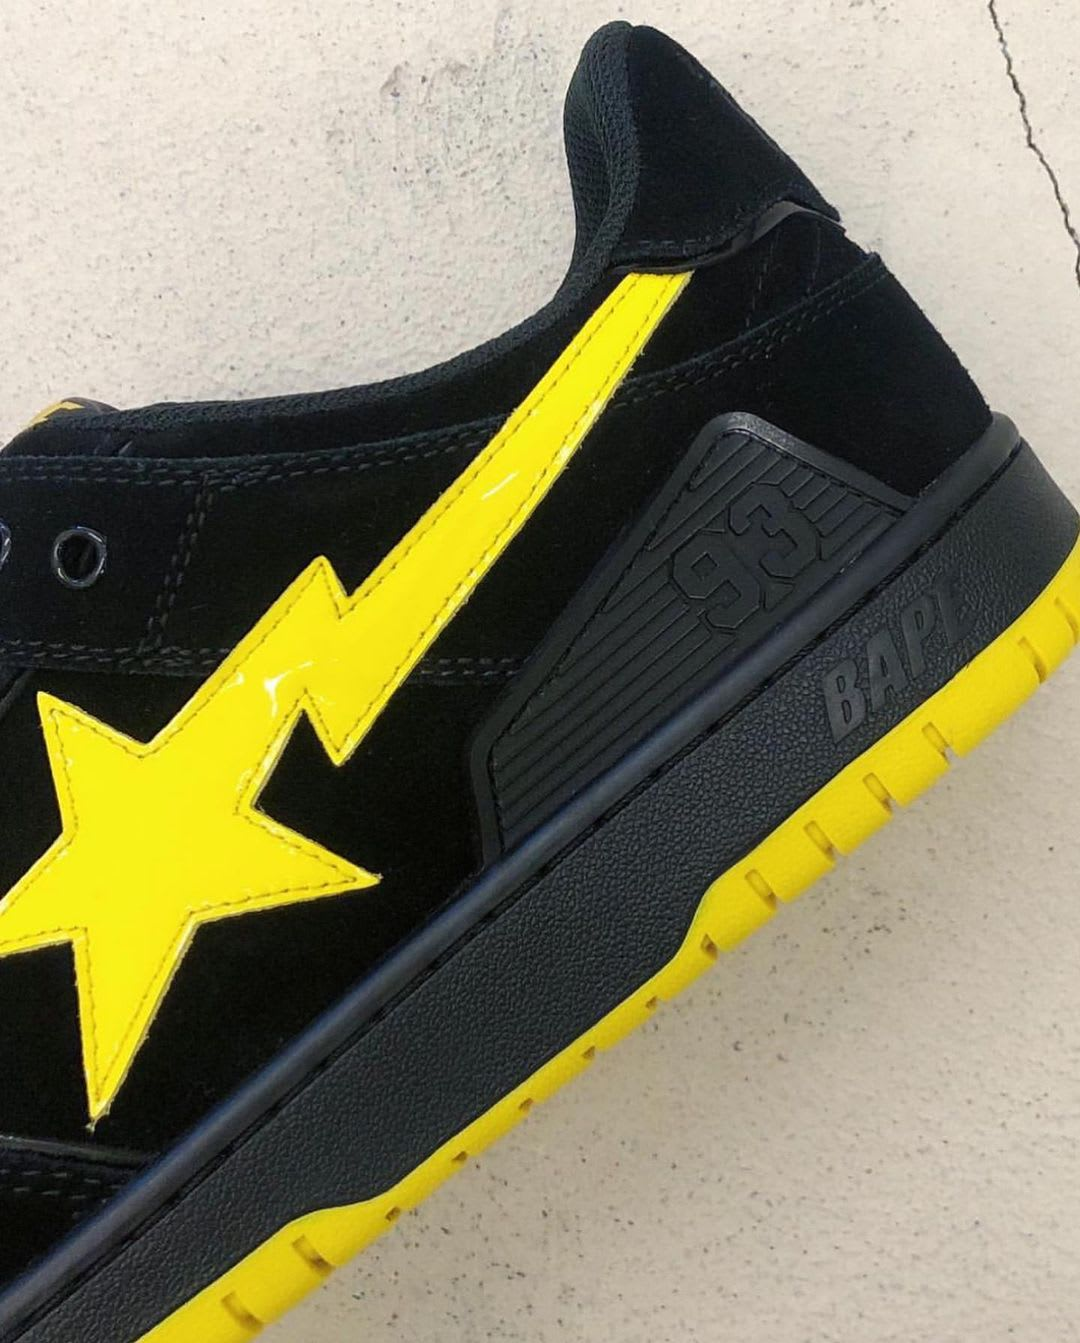 Bape Sk8 Sta Black/Yellow First Look